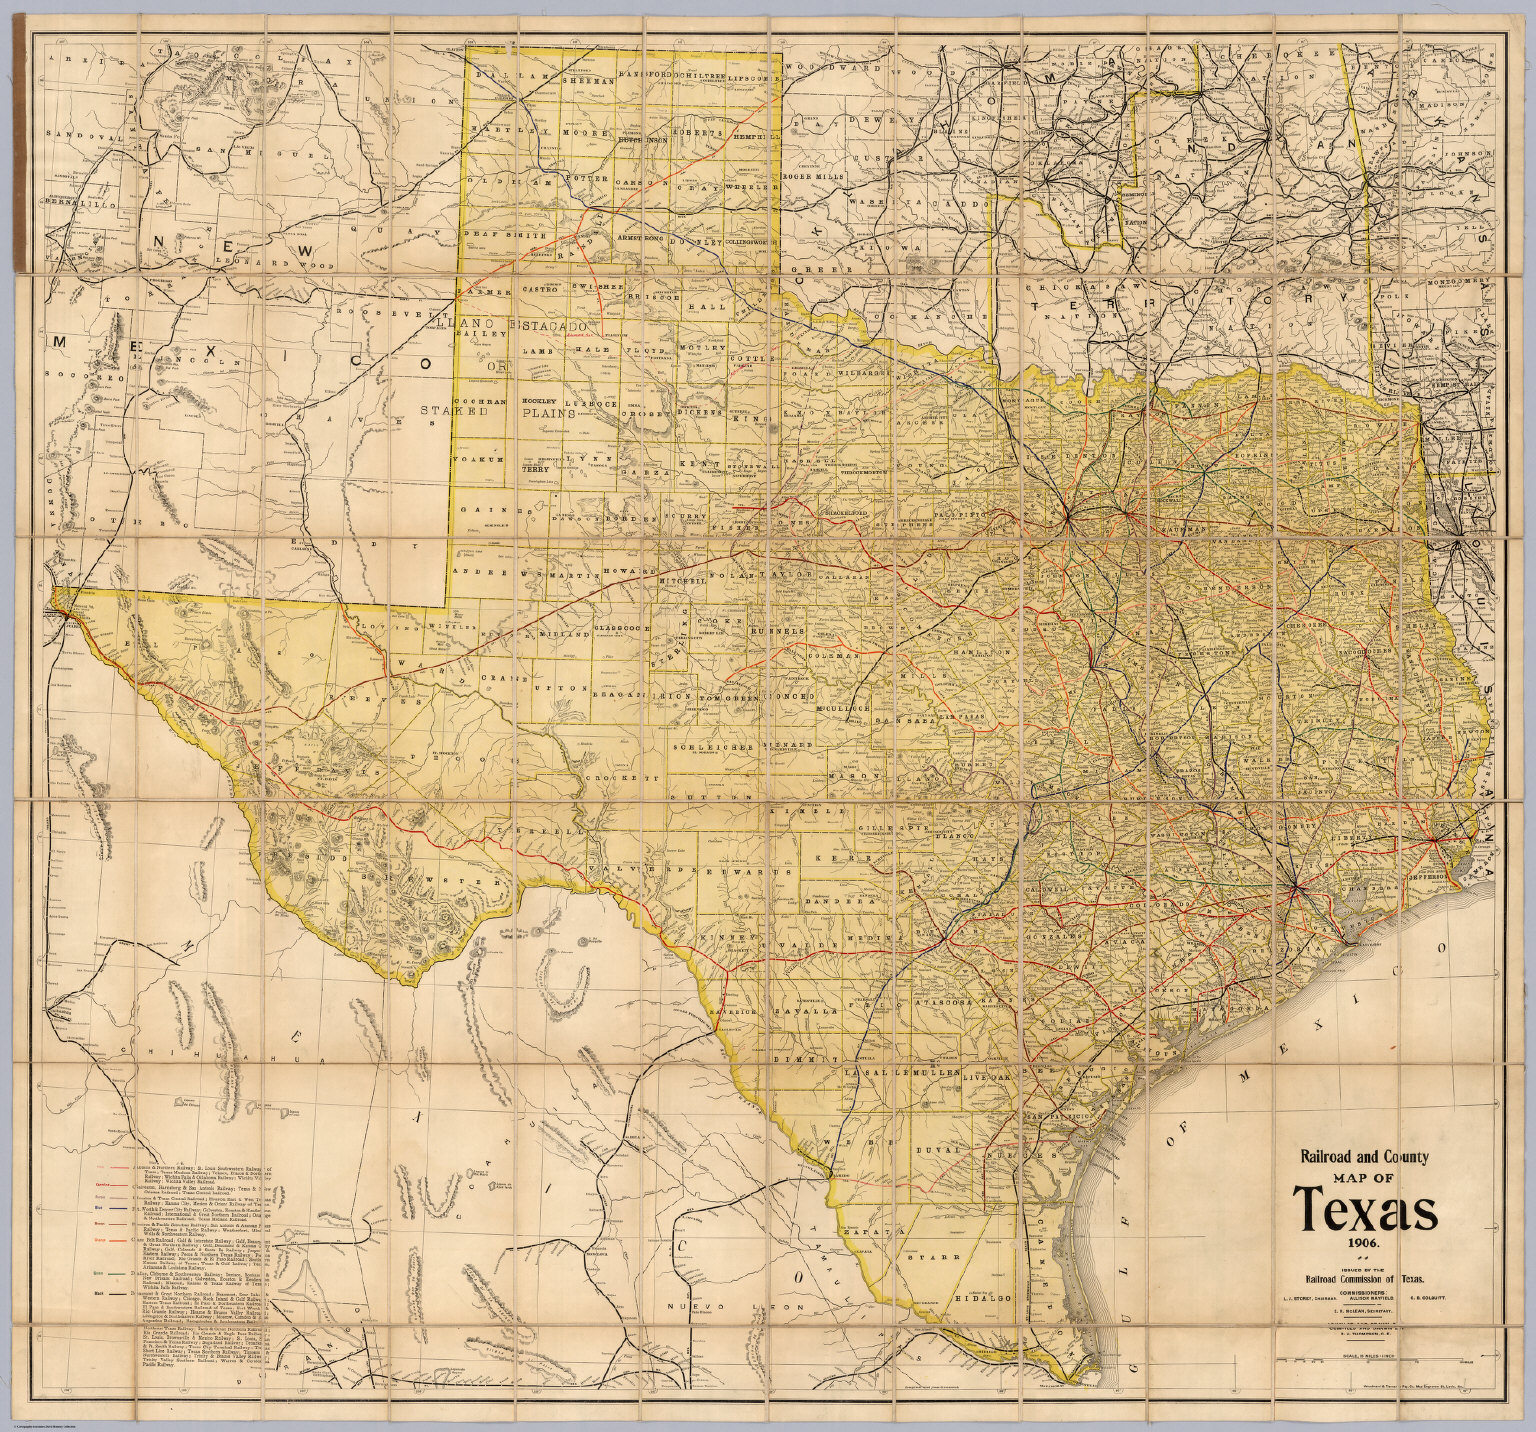 Railroad And County Map Of Texas David Rumsey Historical Map - County maps of texas